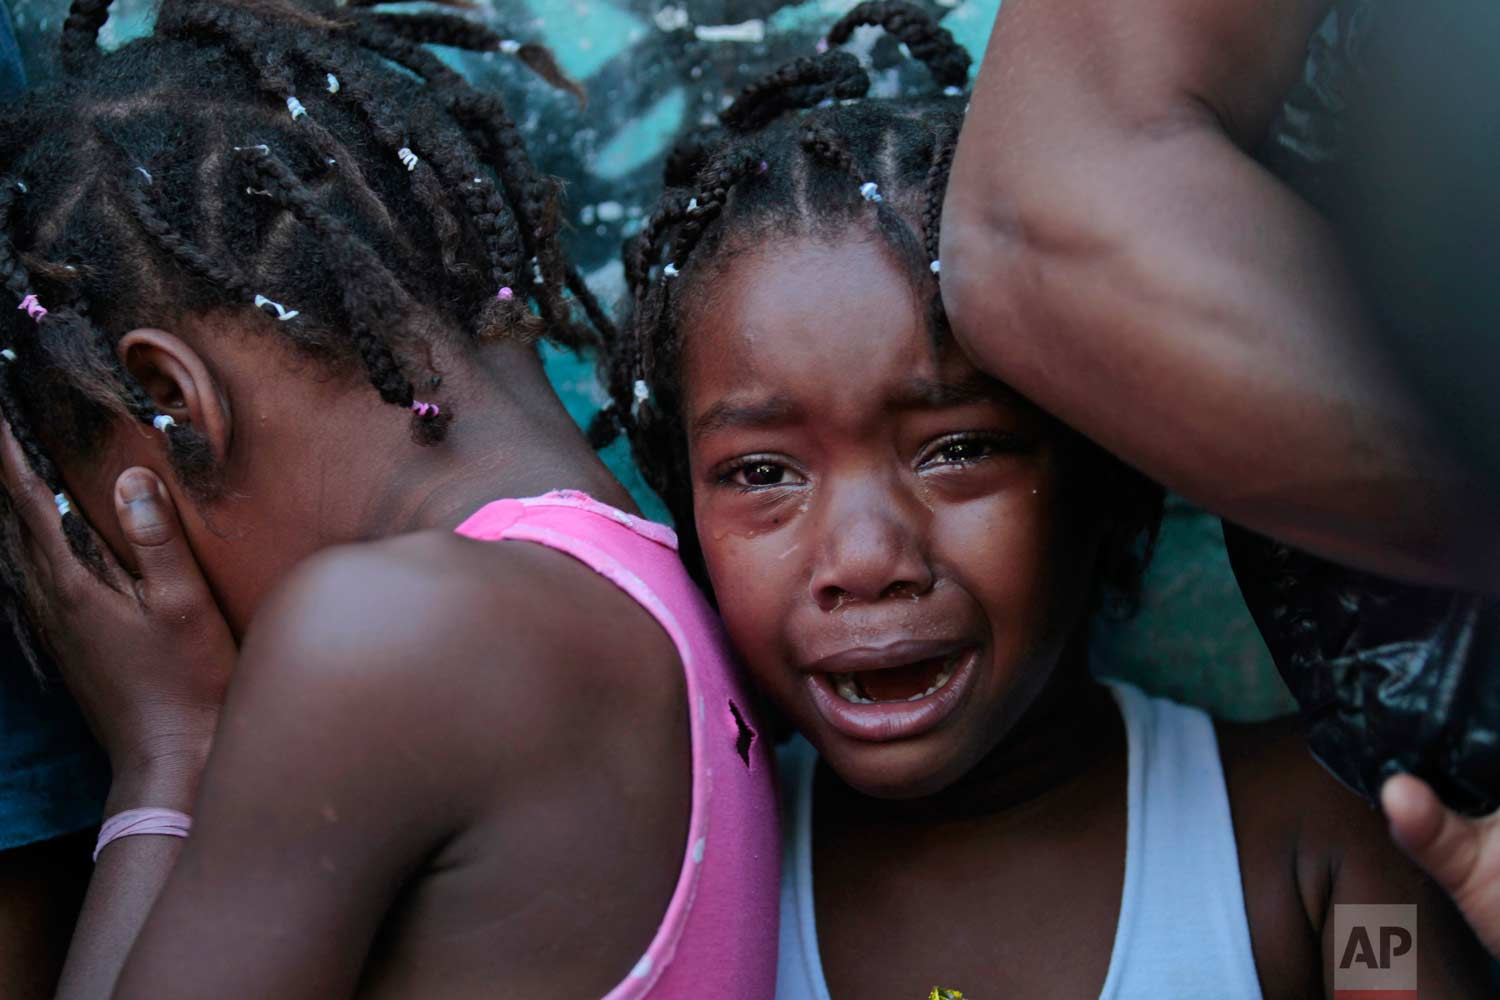 In this Nov. 27, 2010 photo, children cry during a shootout between police and drug traffickers in the Alemao complex of slums, in Rio de Janeiro, Brazil. Soldiers and police crouched behind armored vehicles trained their rifles on dozens of entrances to the complex where more than 85,000 people live, giving drug traffickers a chance to surrender before they stormed what is considered the most dangerous area of Rio. (AP Photo/ Silvia Izquierdo)